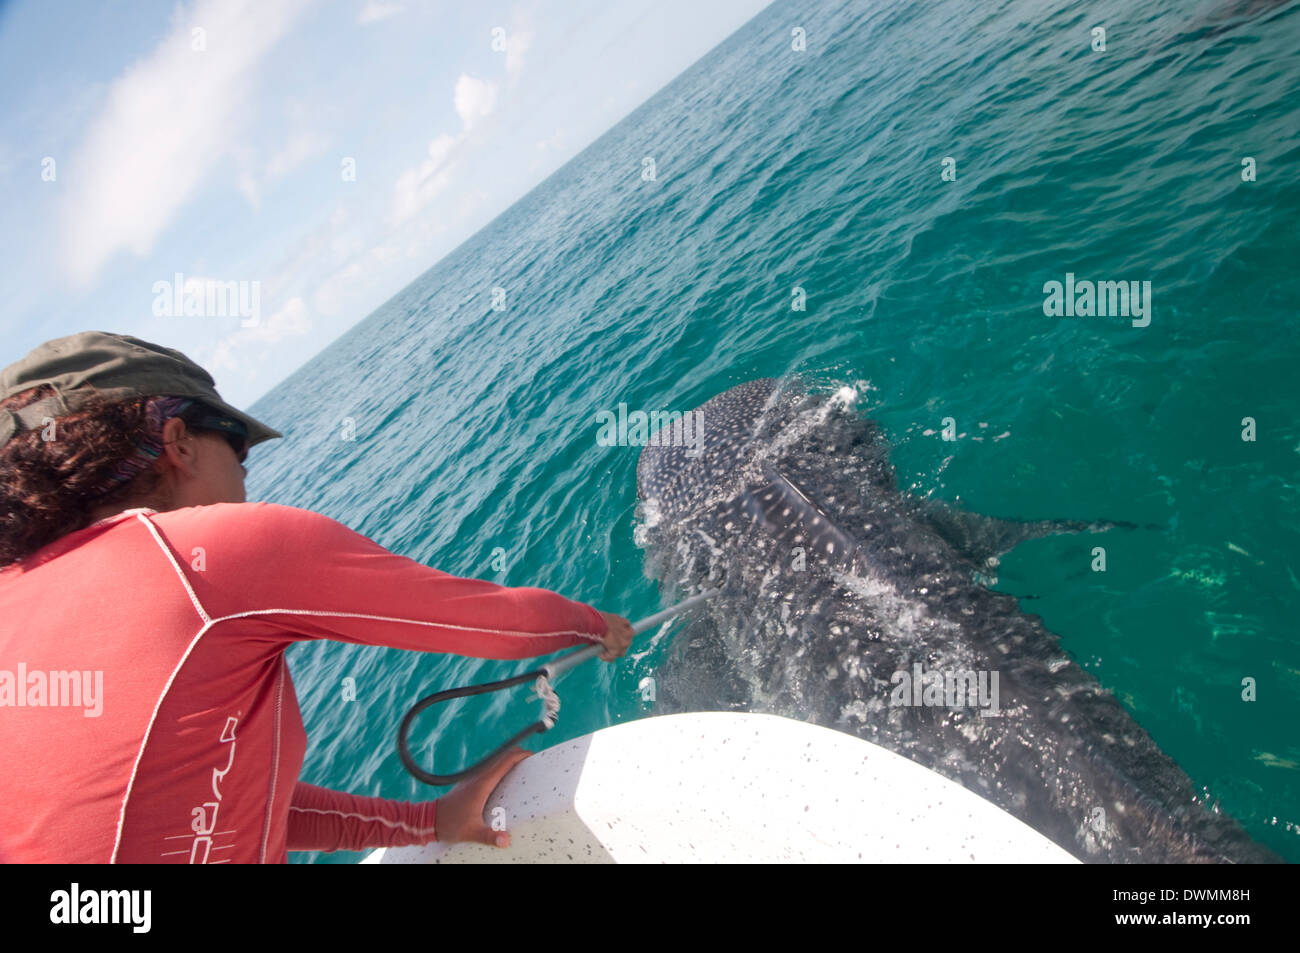 Biologist taking skin sample from a whale shark, Yum Balam Marine Protected Area, Quintana Roo, Mexico - Stock Image